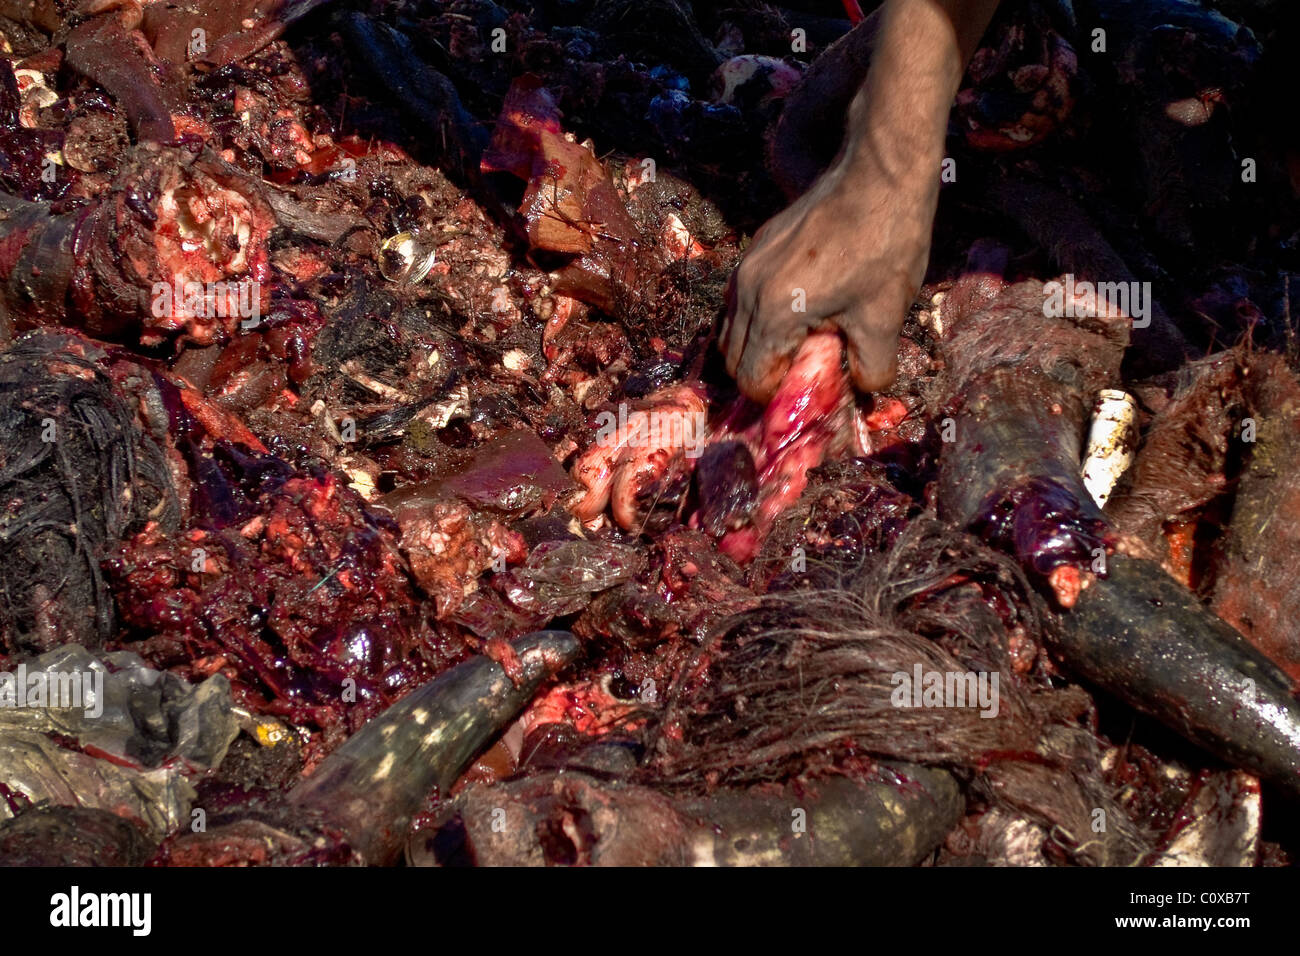 A Nicaraguan man searches for meat in a bloody pile of thrown intestines in the garbage dump La Chureca, Managua, - Stock Image